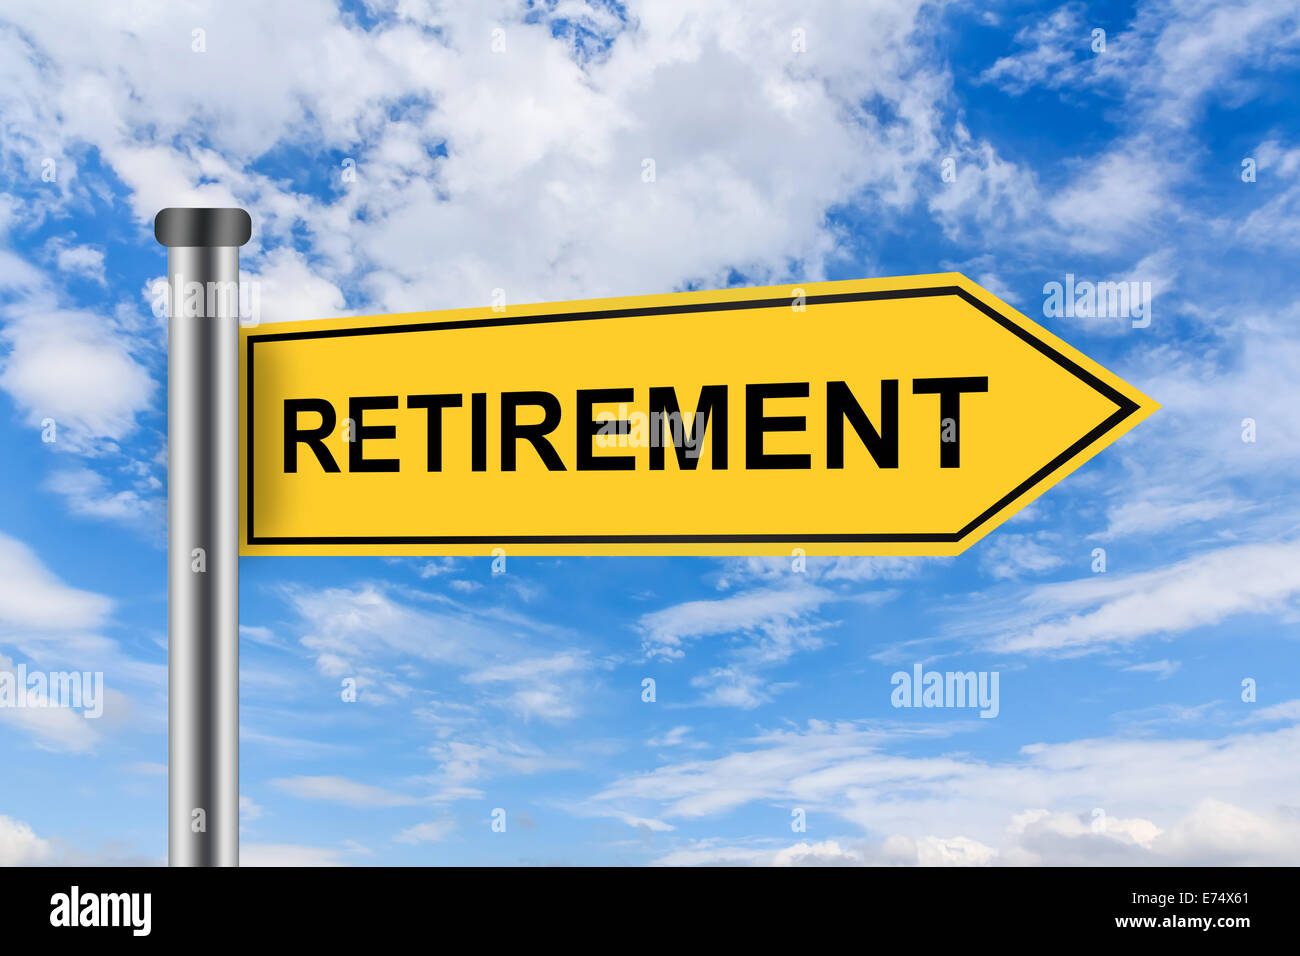 retirement words on yellow road sign on blue sky stock photo